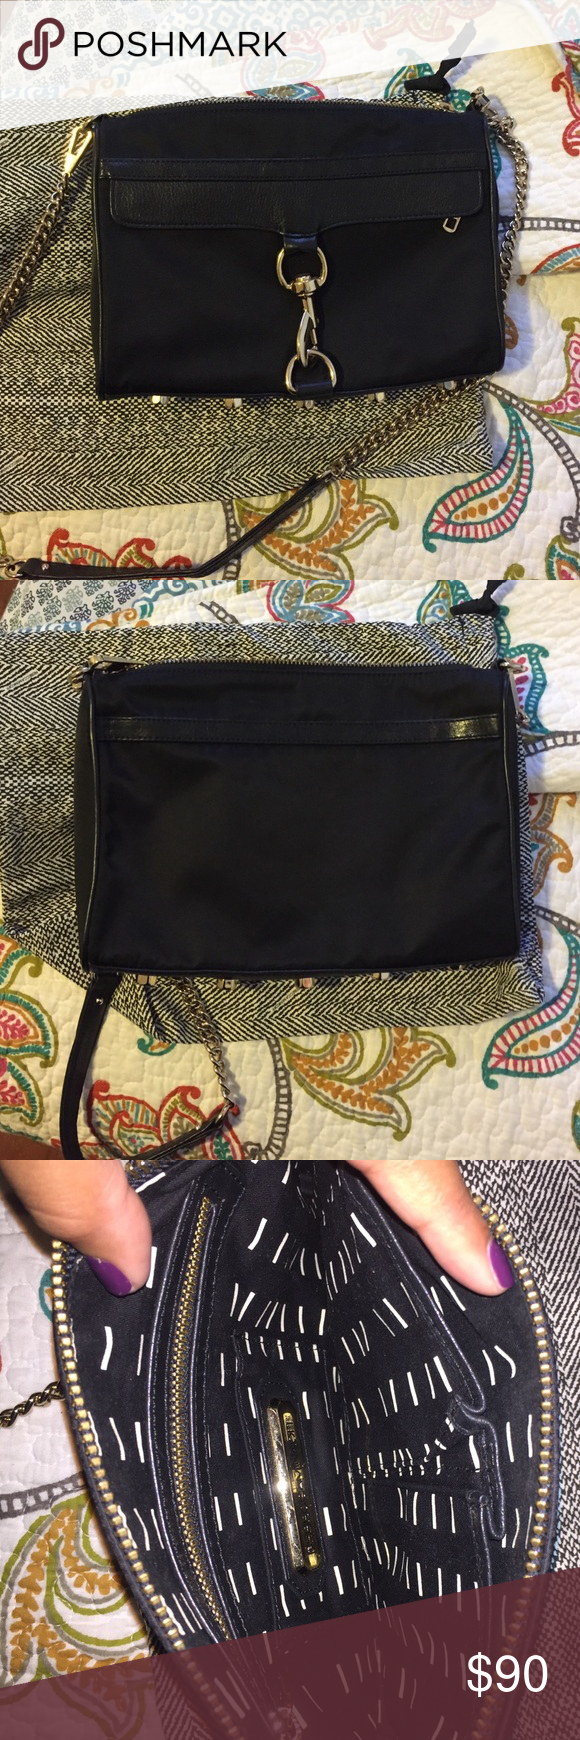 Rebecca Minkoff Large Mac Crossbody Authentic Rebecca Minkoff Large Mac crossbody in black either gold hardware. Comes with dust bag. Offers welcome :) Rebecca Minkoff Bags Crossbody Bags